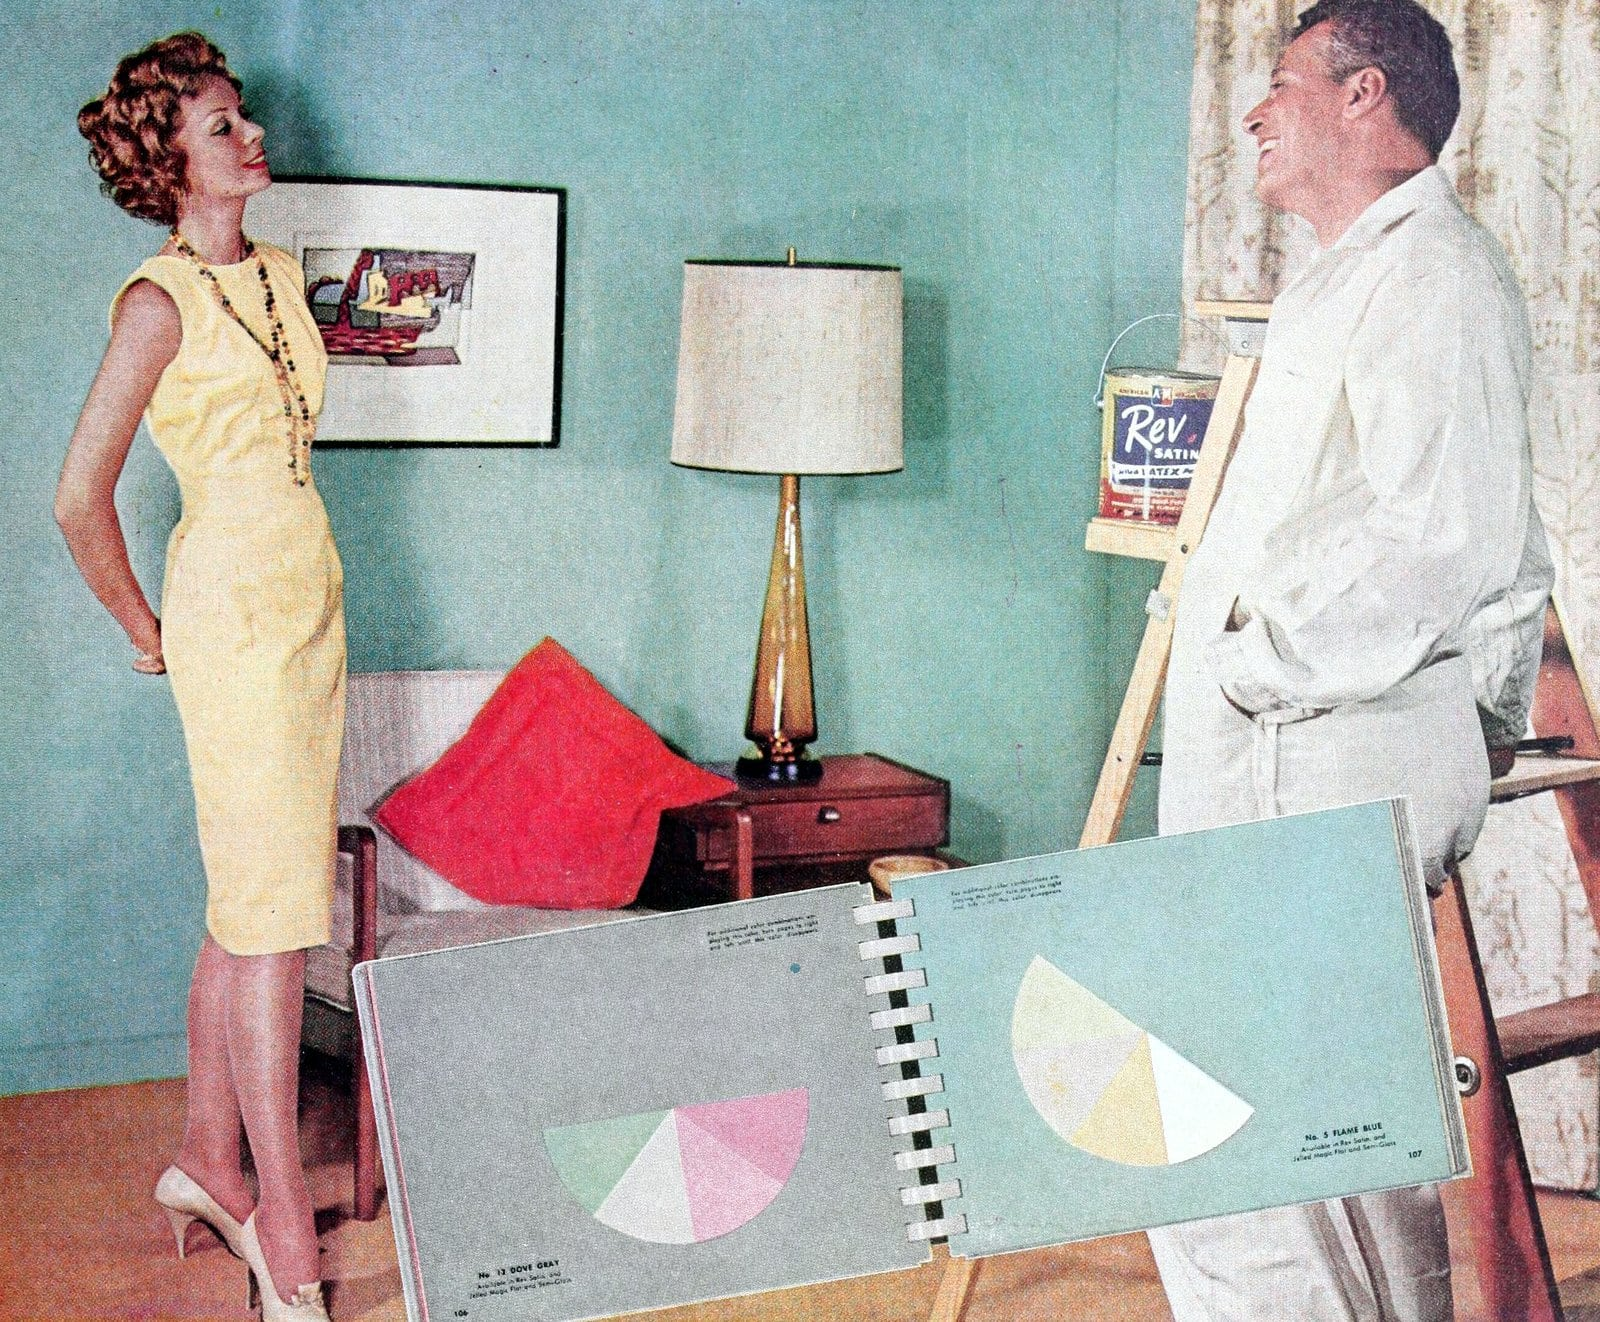 Choosing paint colors for the late 1950s home